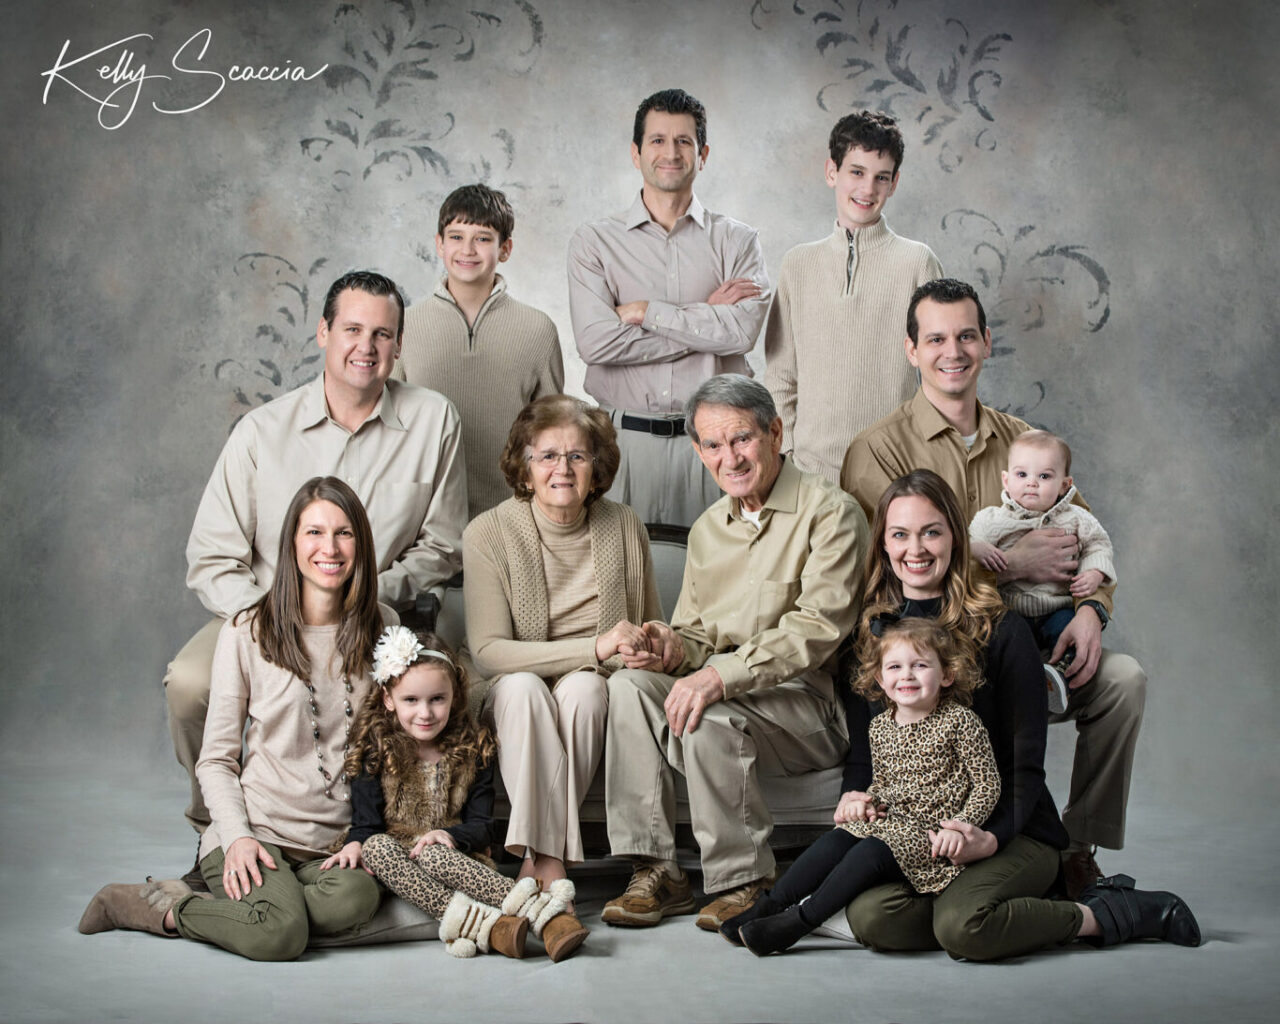 Studio portrait of grandma and grandpa with five grandchildren, three kids, two with spouses, wearing brown tones, sitting on a couch, smiling looking at you